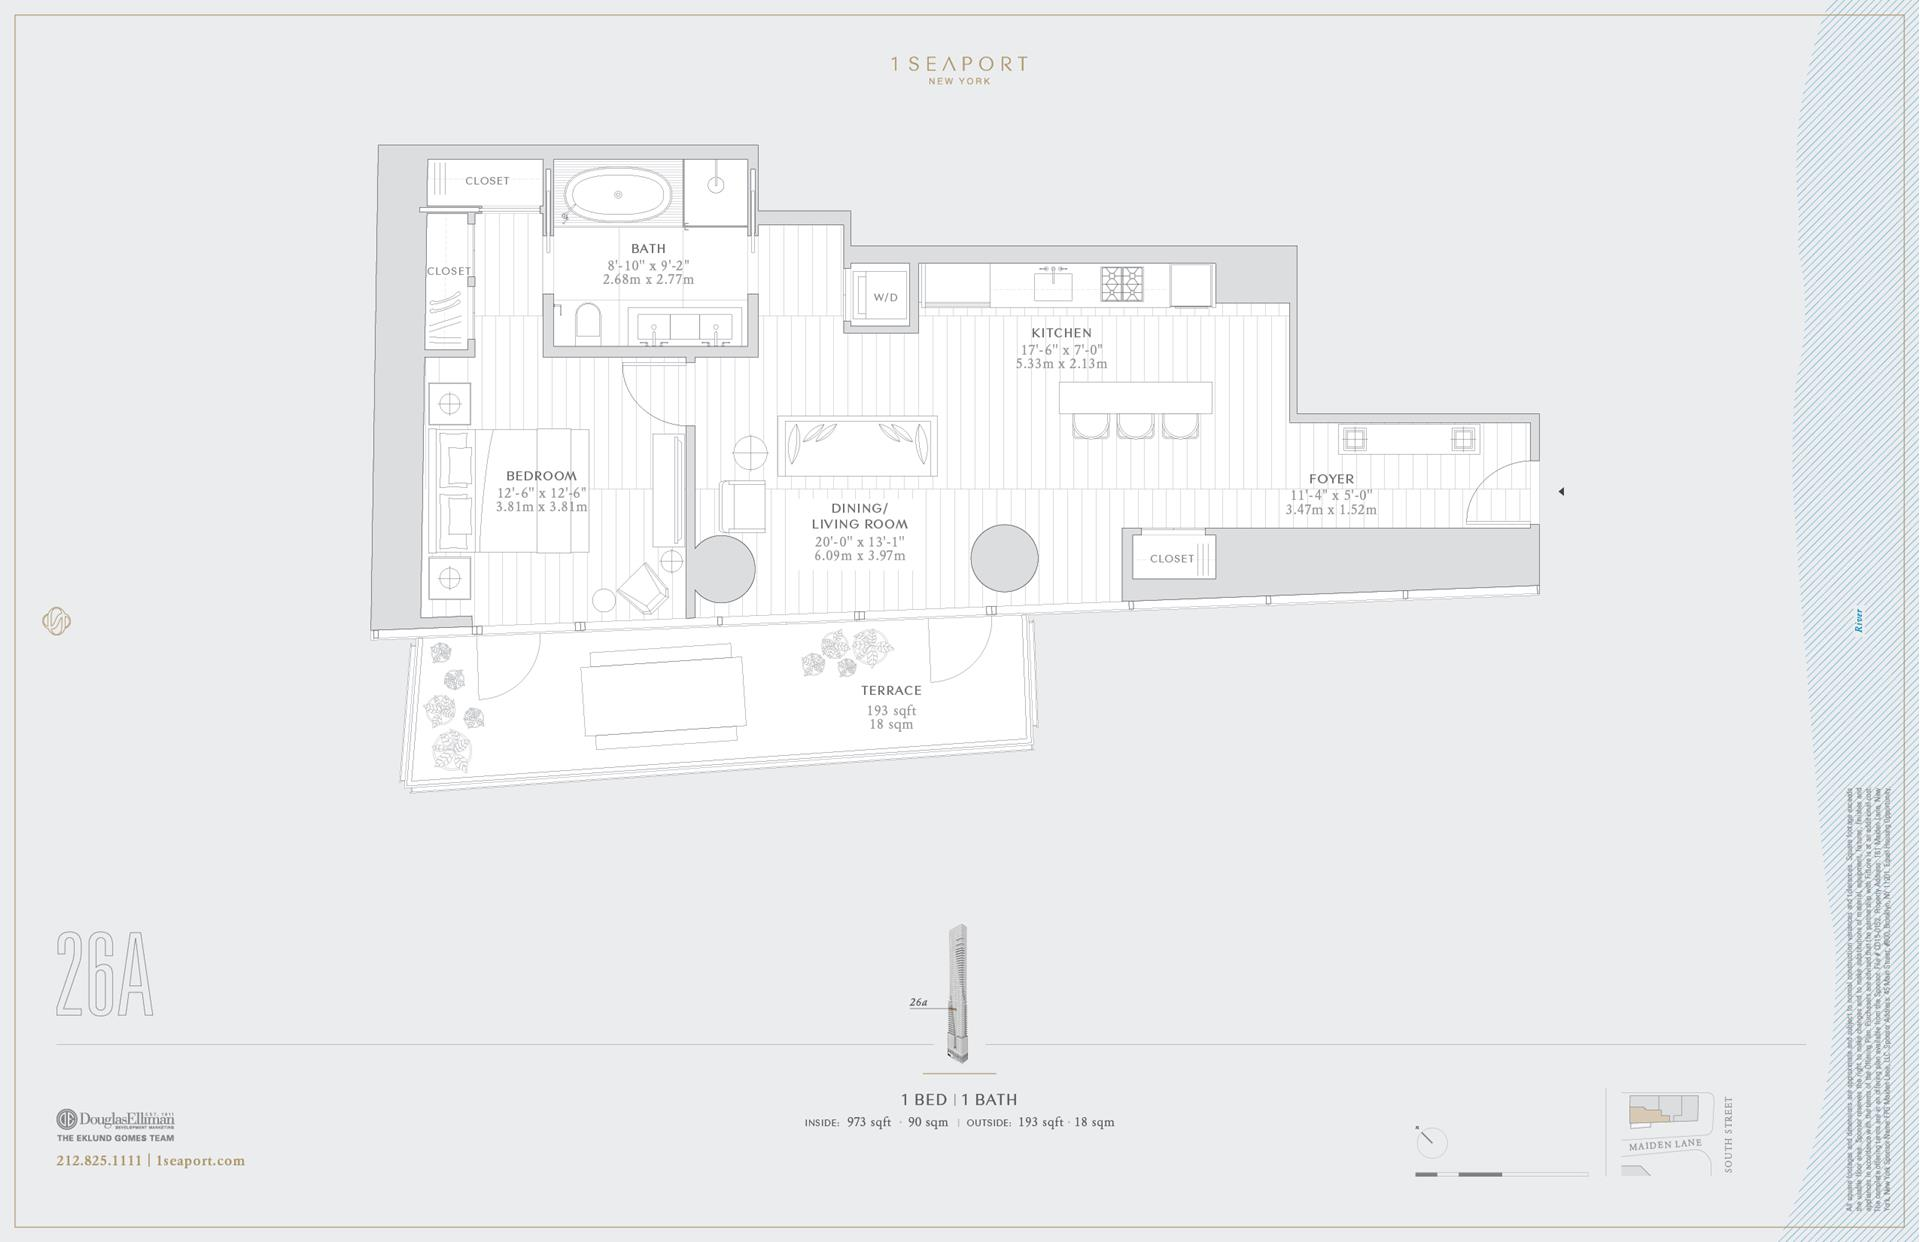 Floor plan of 1 Seaport, 161 Maiden Ln, 26A - Financial District, New York